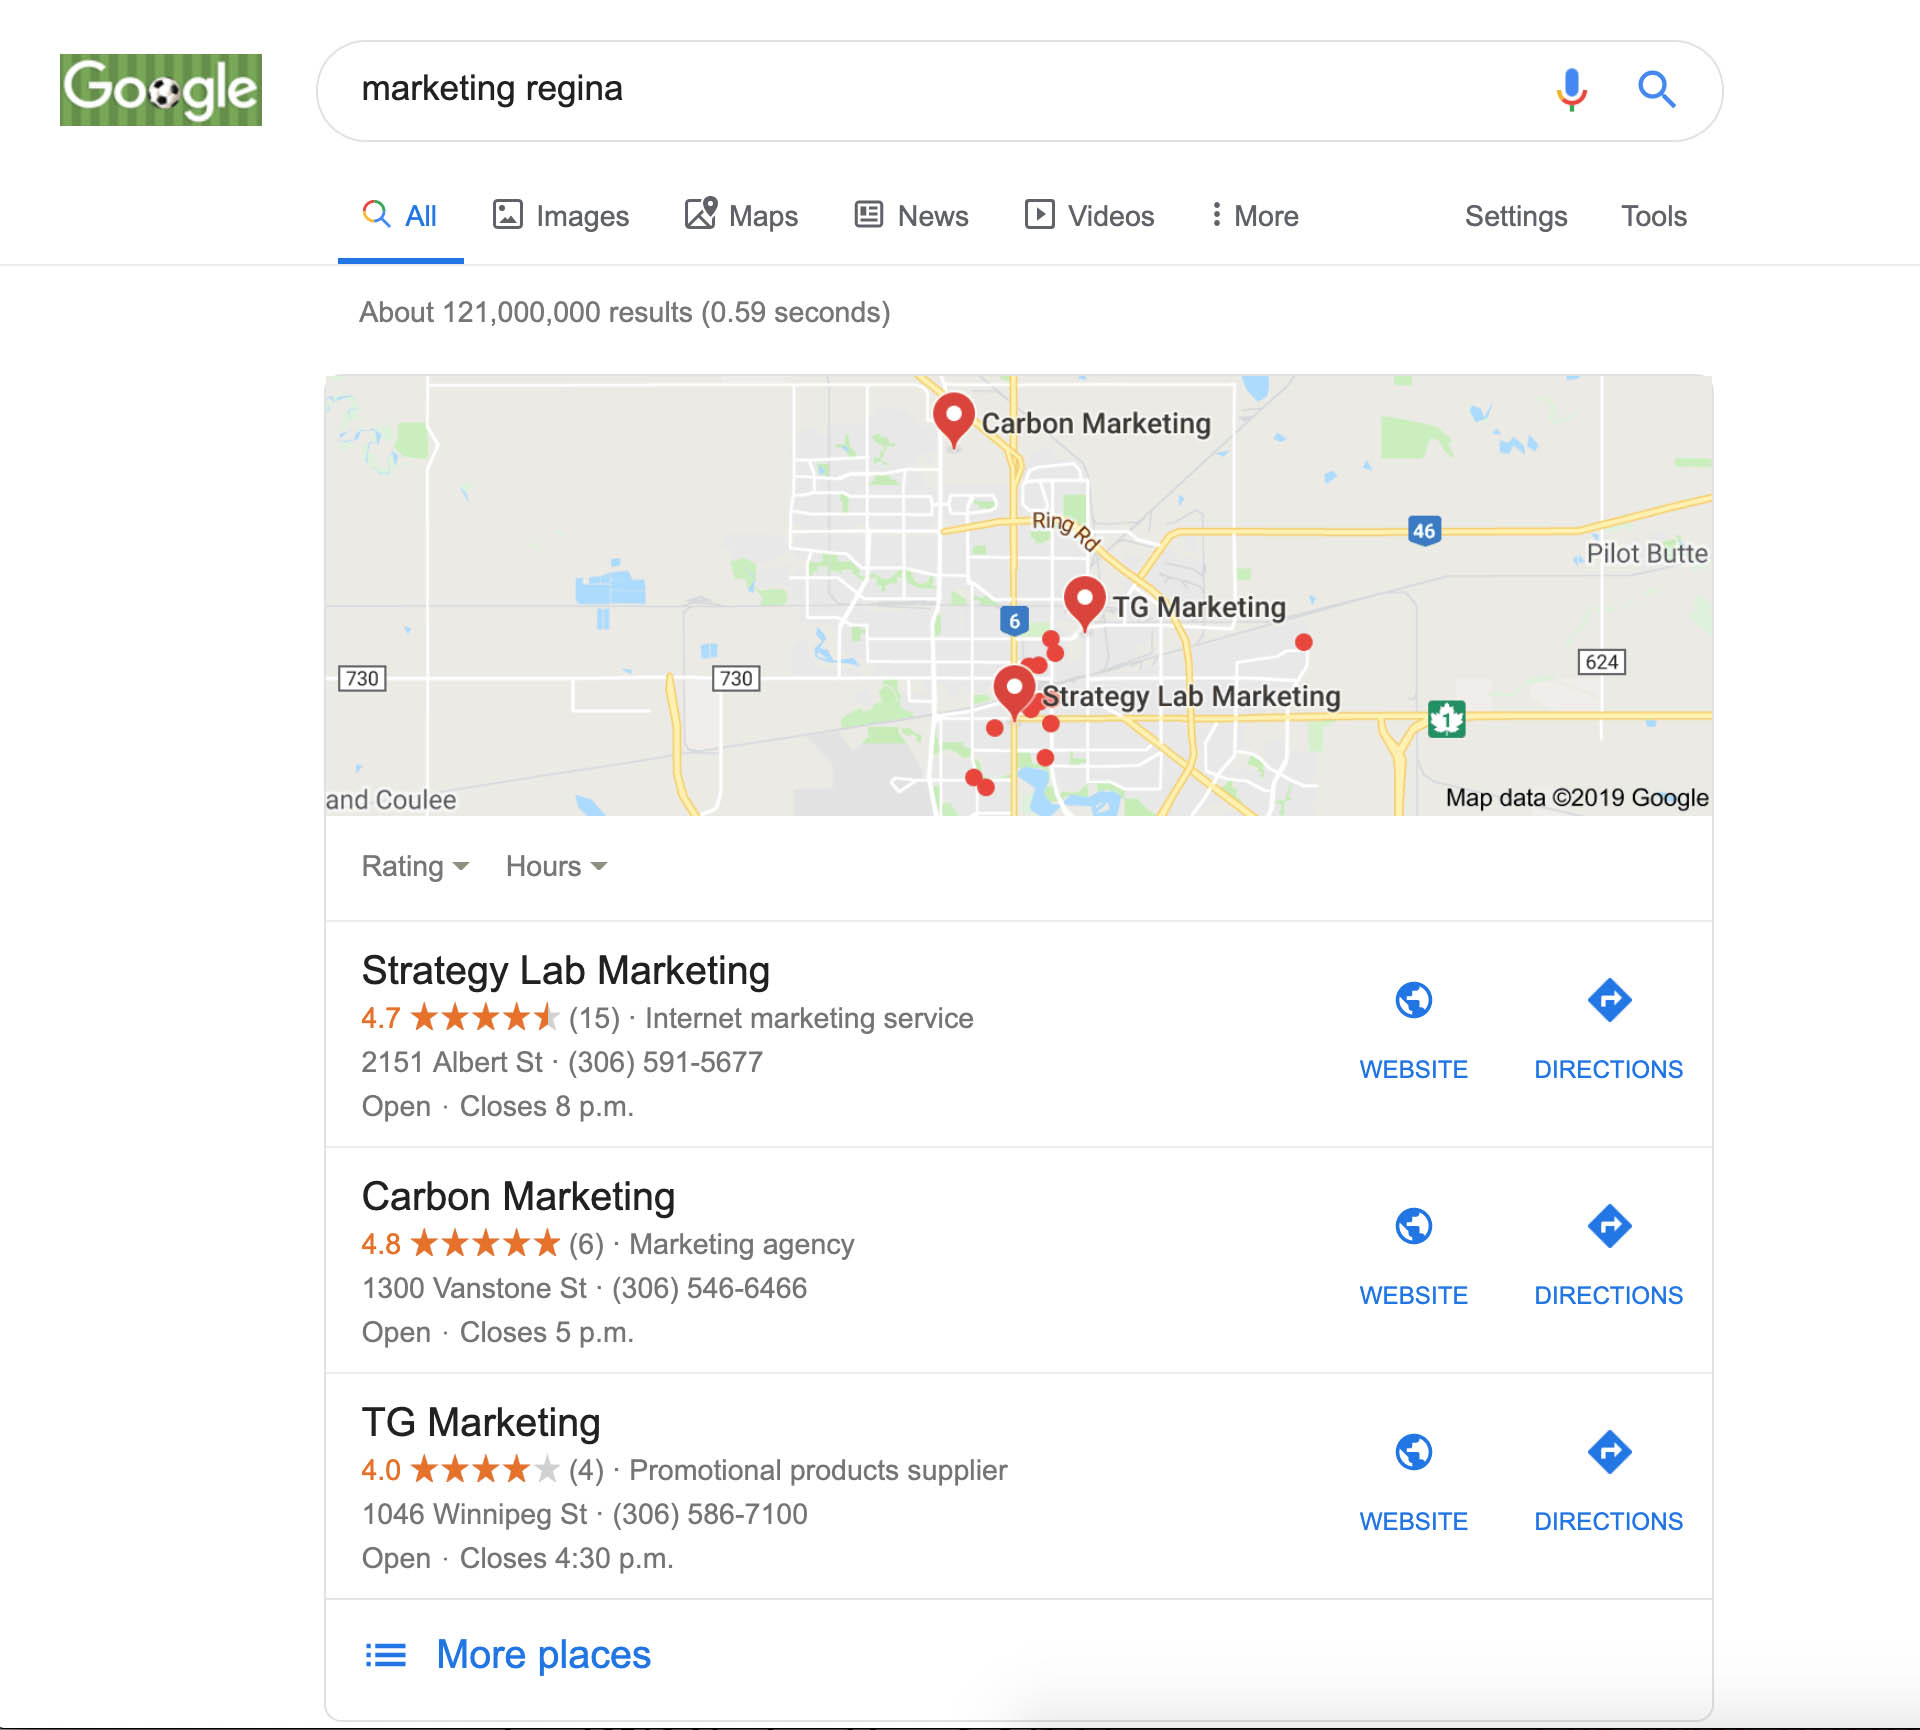 Google Map for Marketing Regina